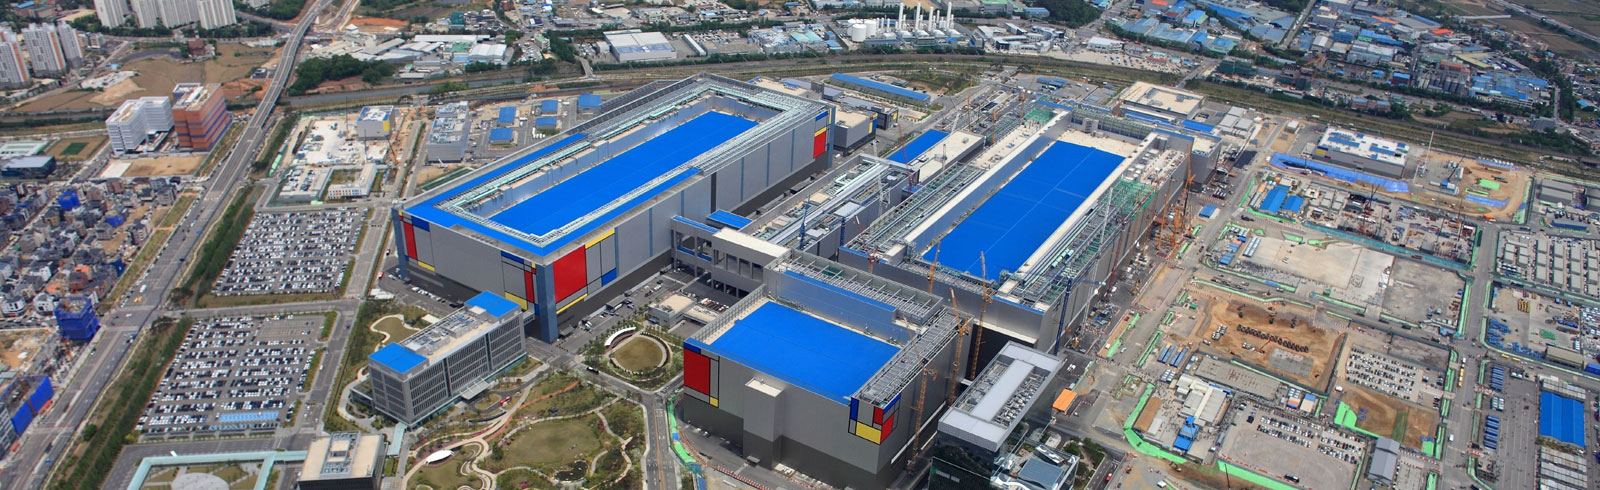 Samsung expands its foundry capacity with a 5 nm production line